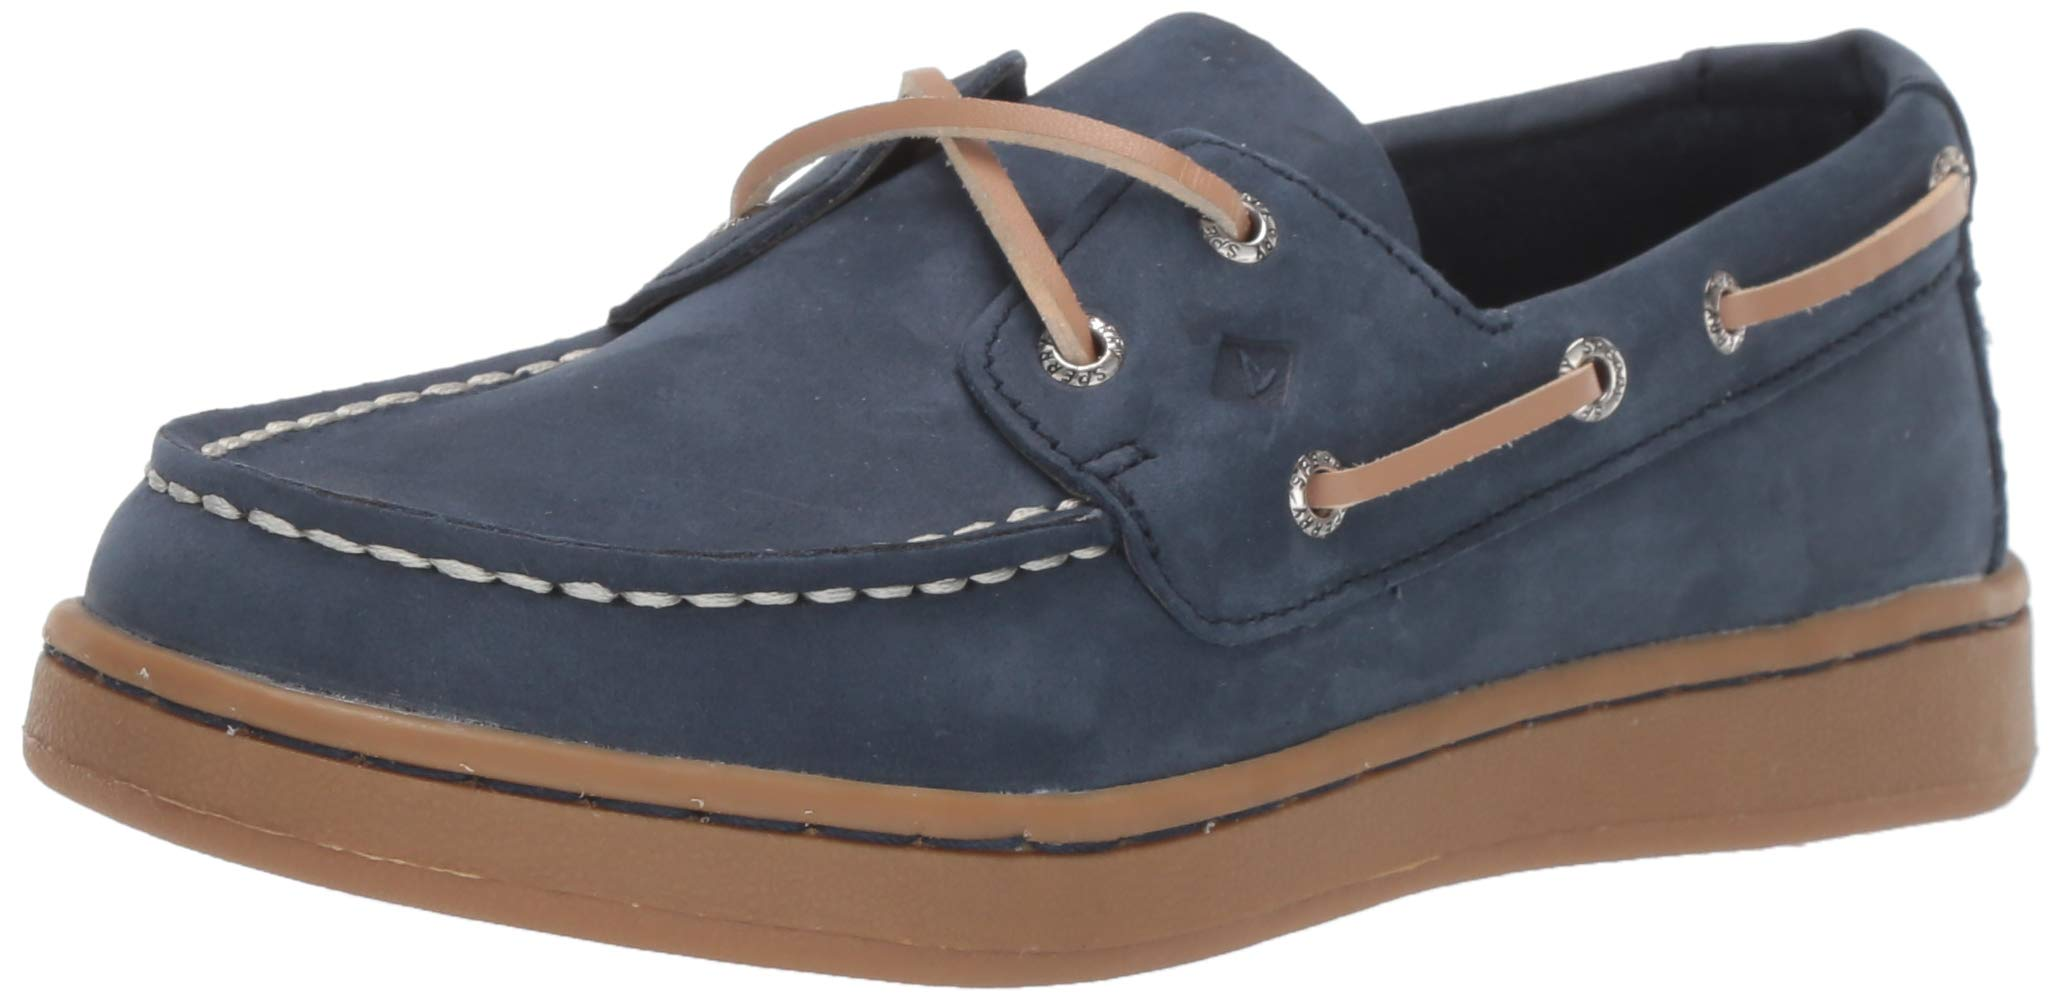 SPERRY Boys Cup II Boat Shoe, Navy/Gum, 5.5 M US Big Kid